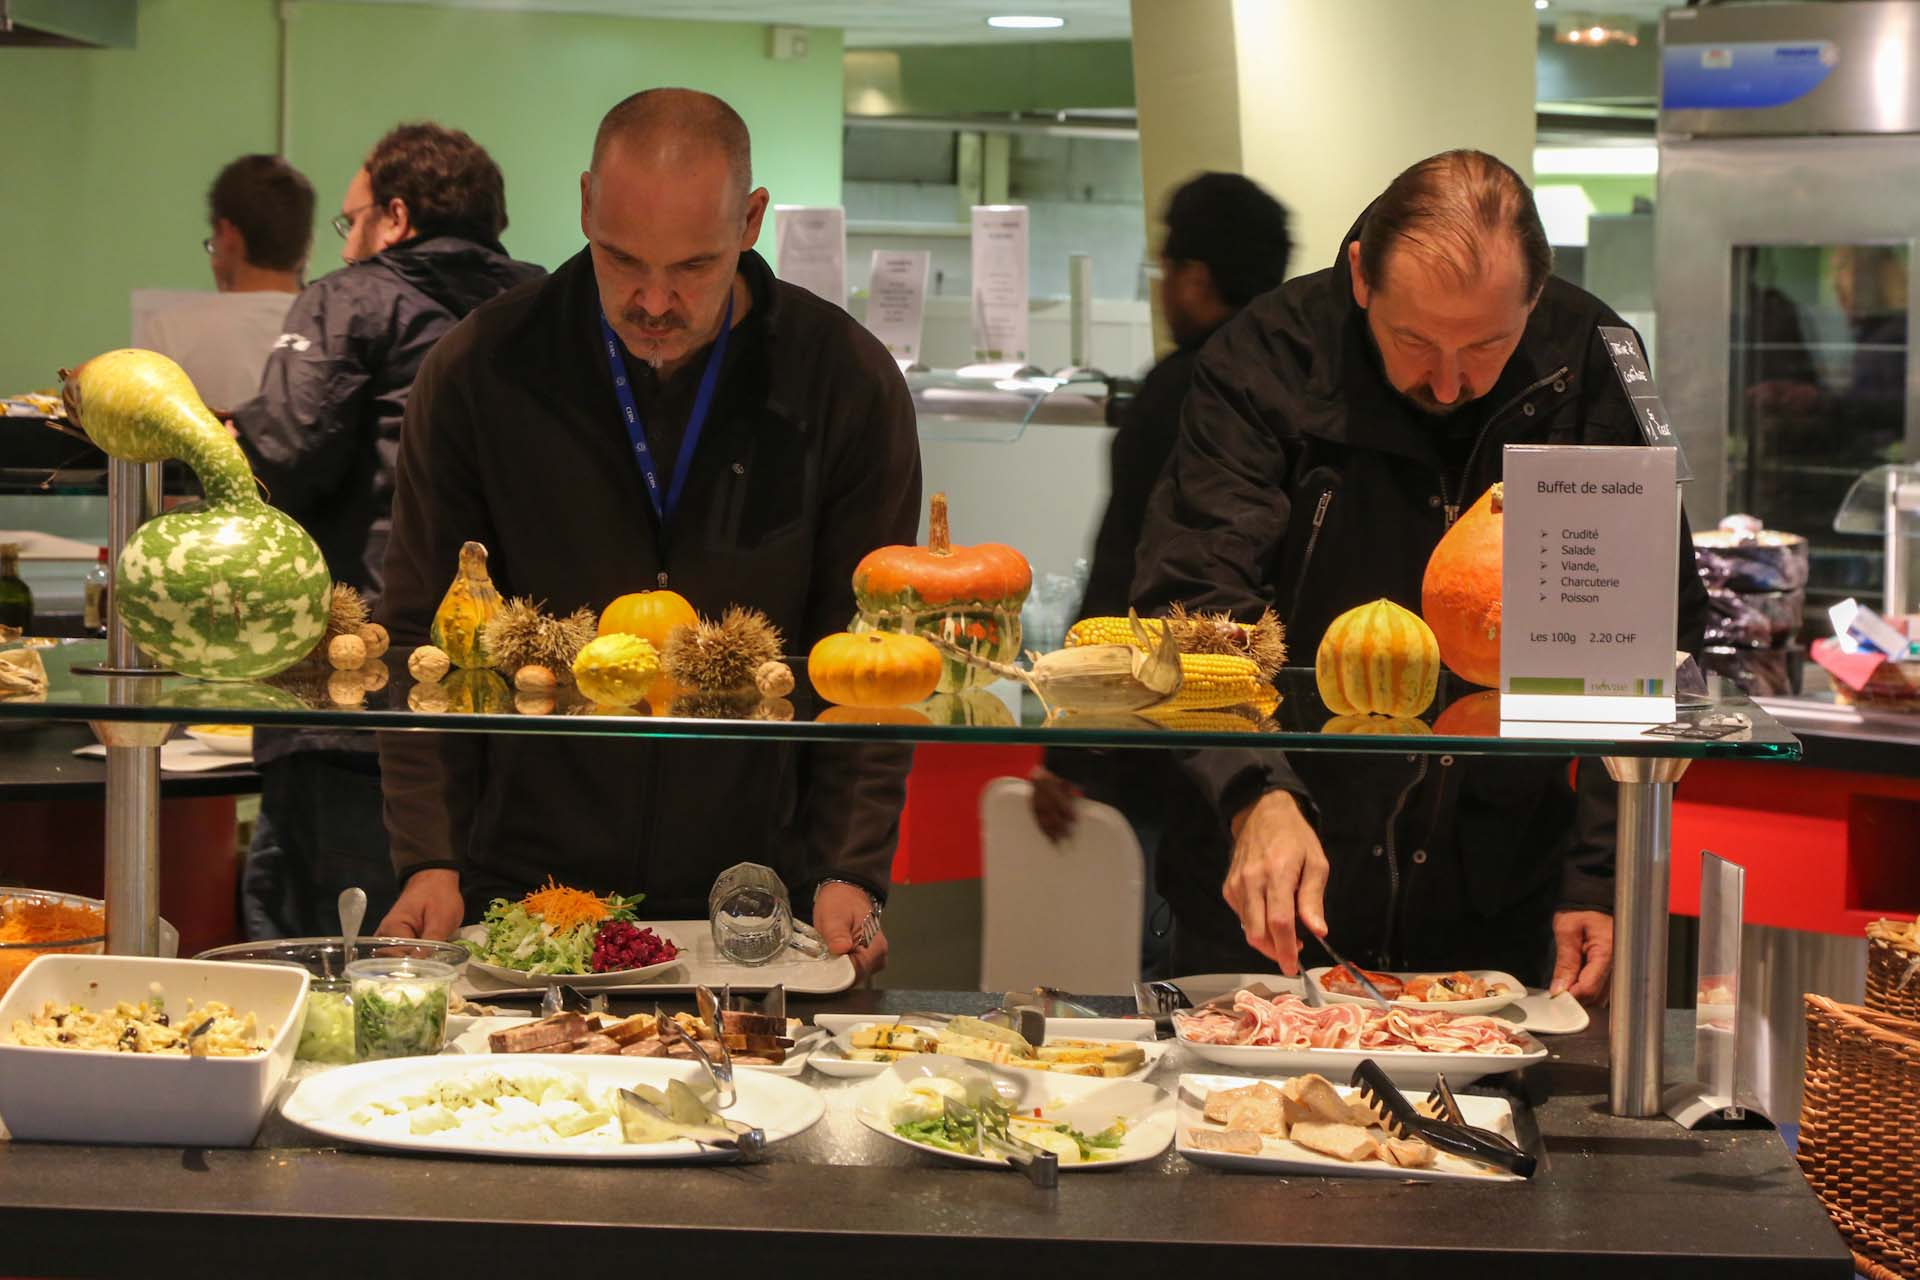 After a long working day, inside the lunchroom and cafeteria at the CERN